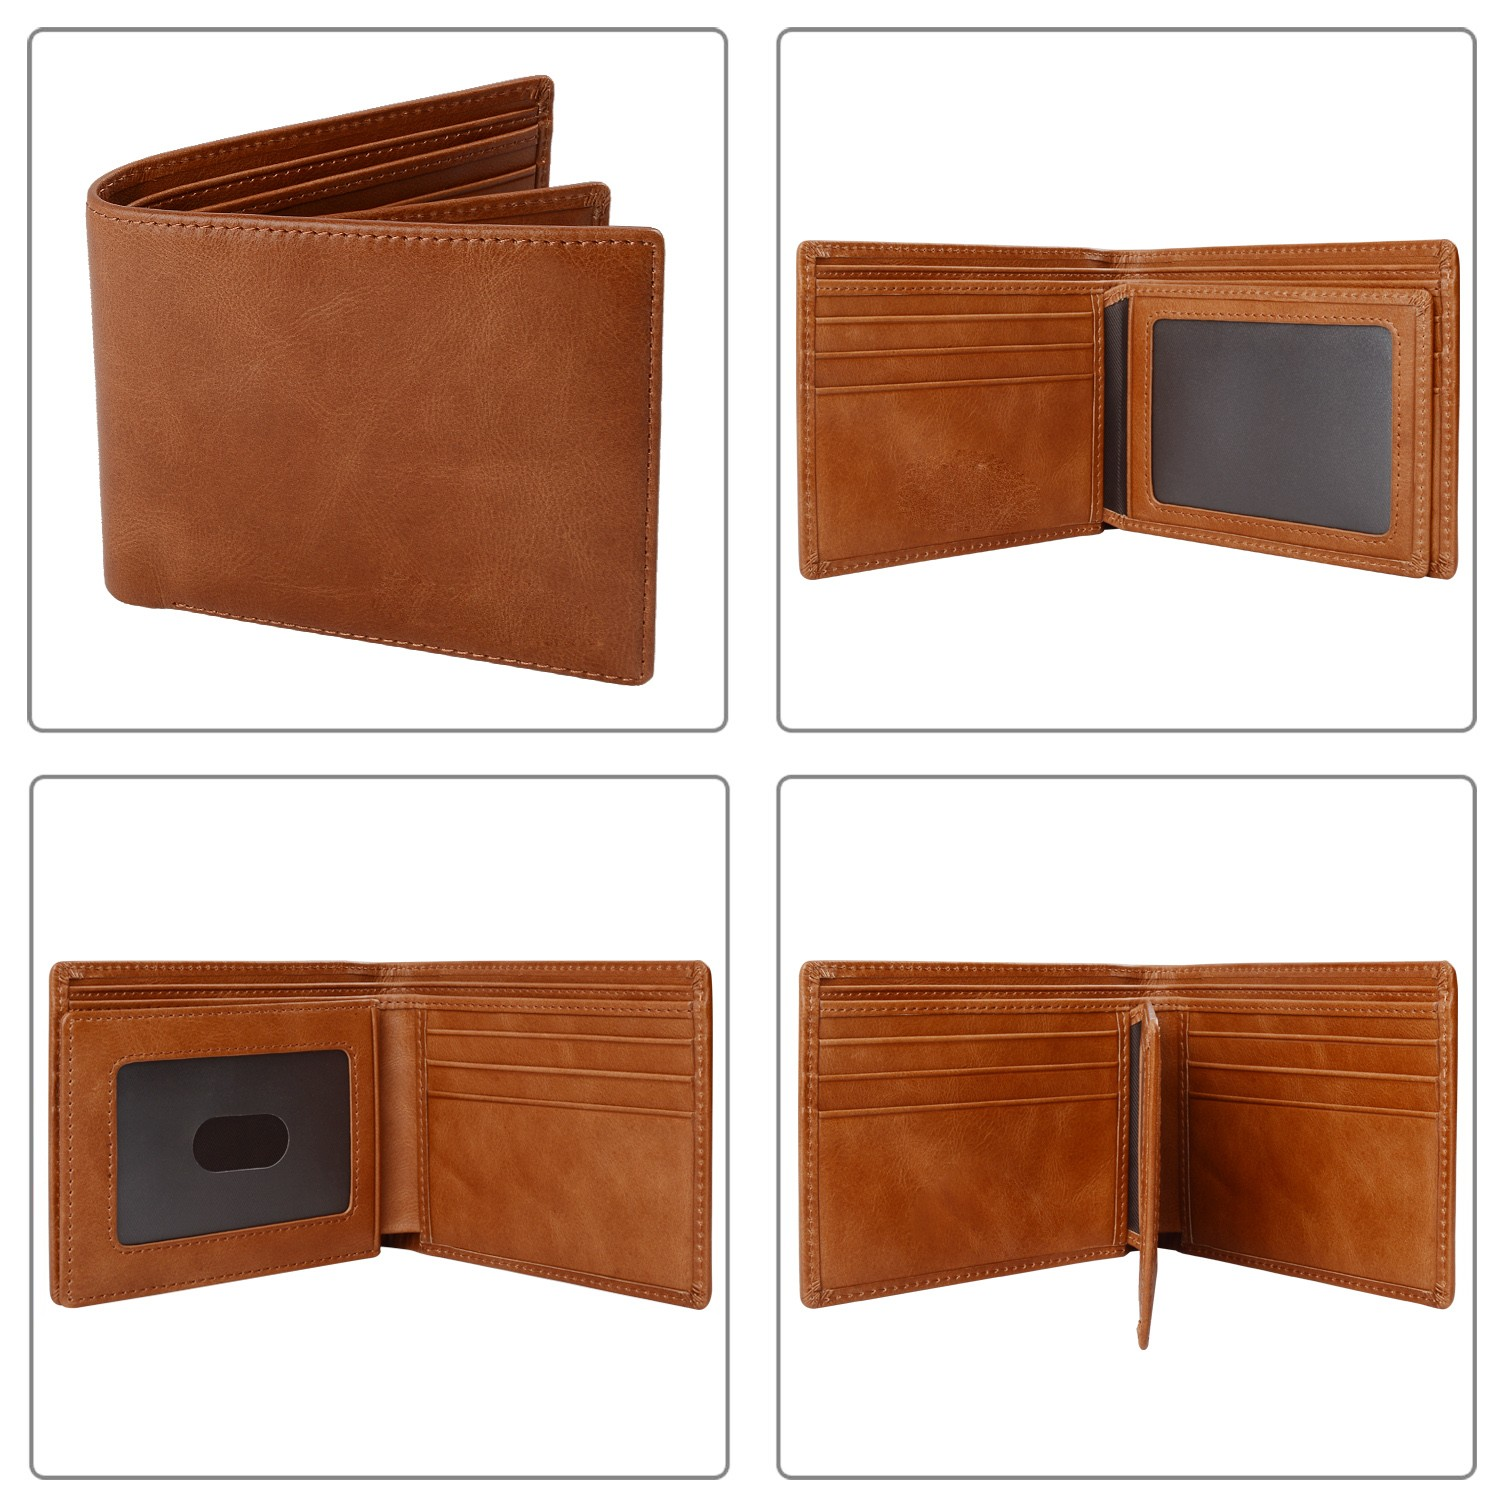 AIVI custom leather wallets for sale for travel-4